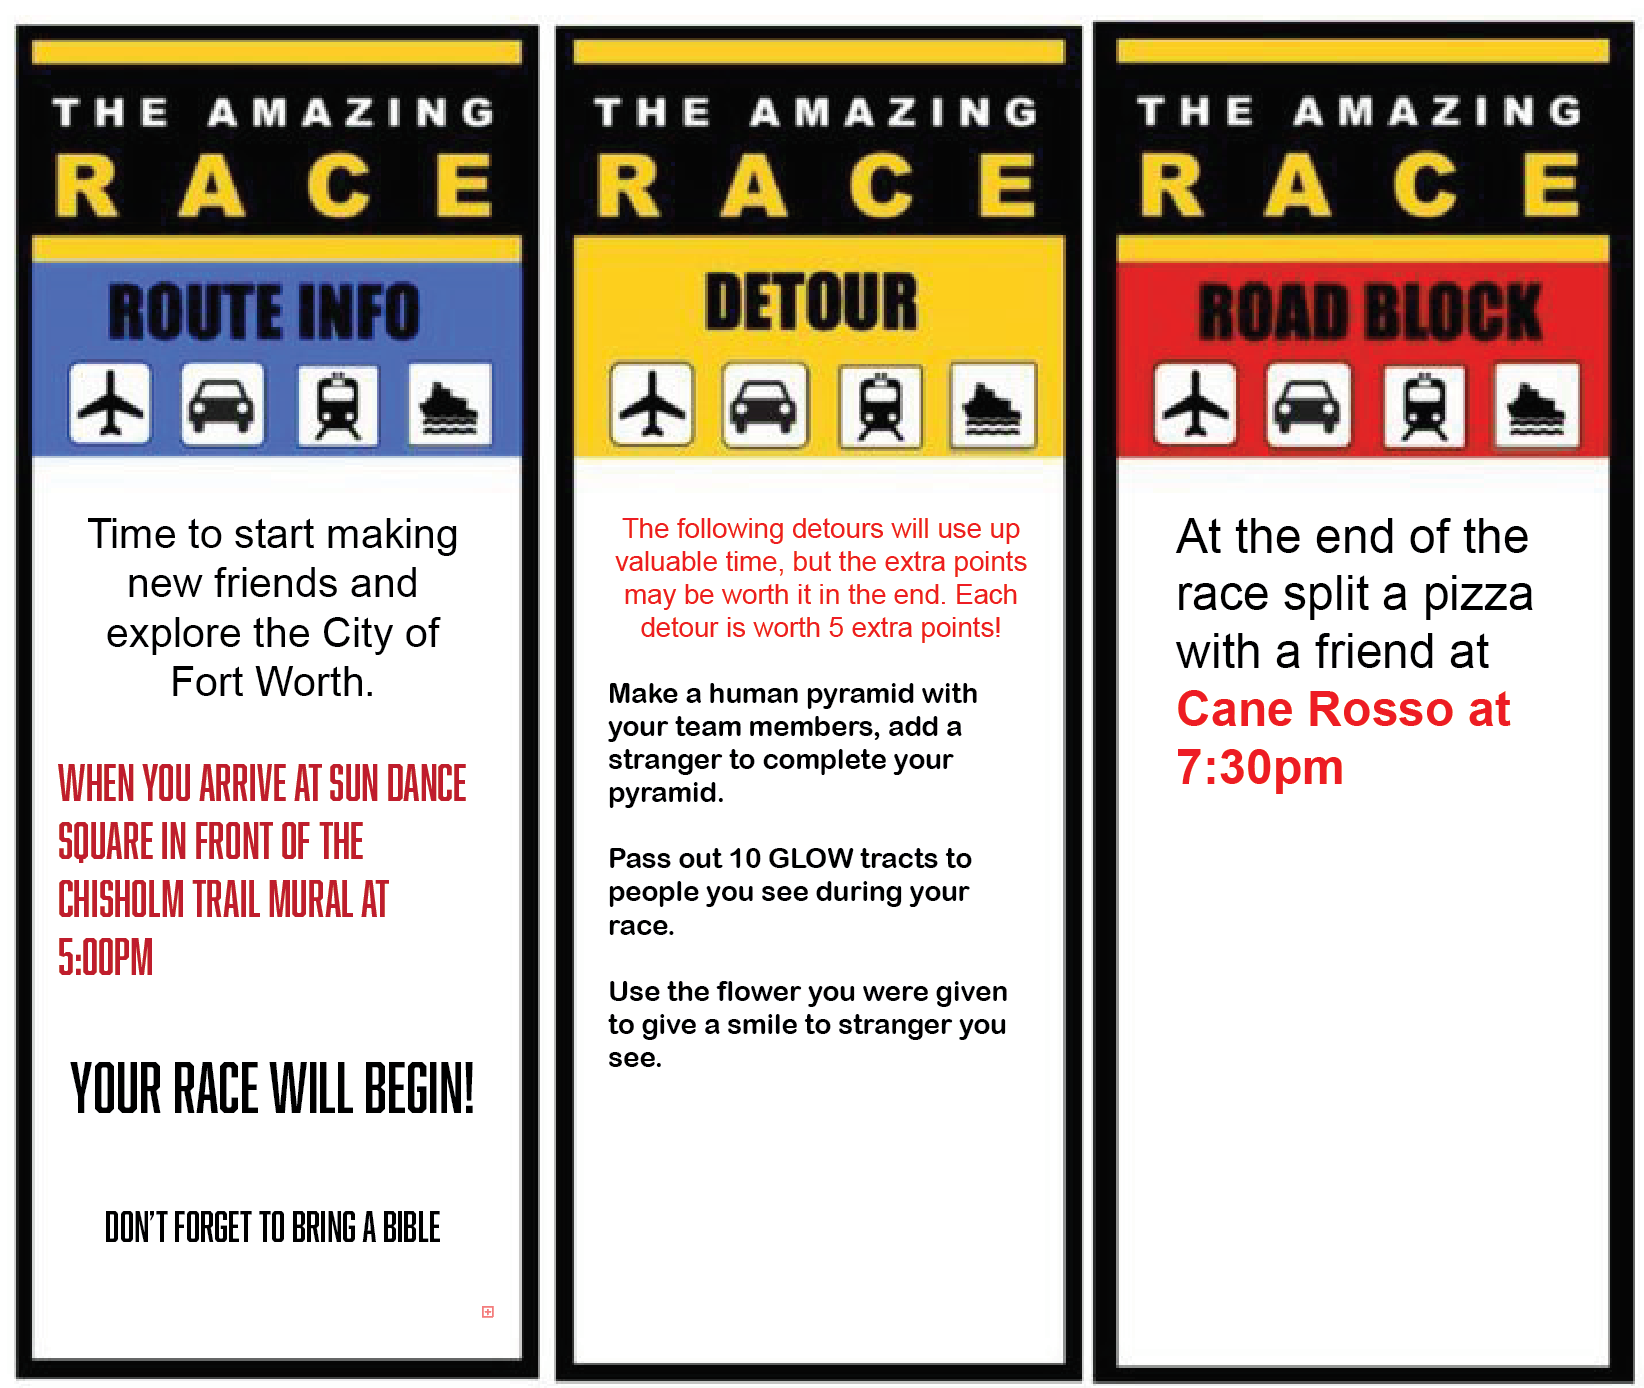 AMAZING RACE // ROUTE INFO // MAY 18 5PM